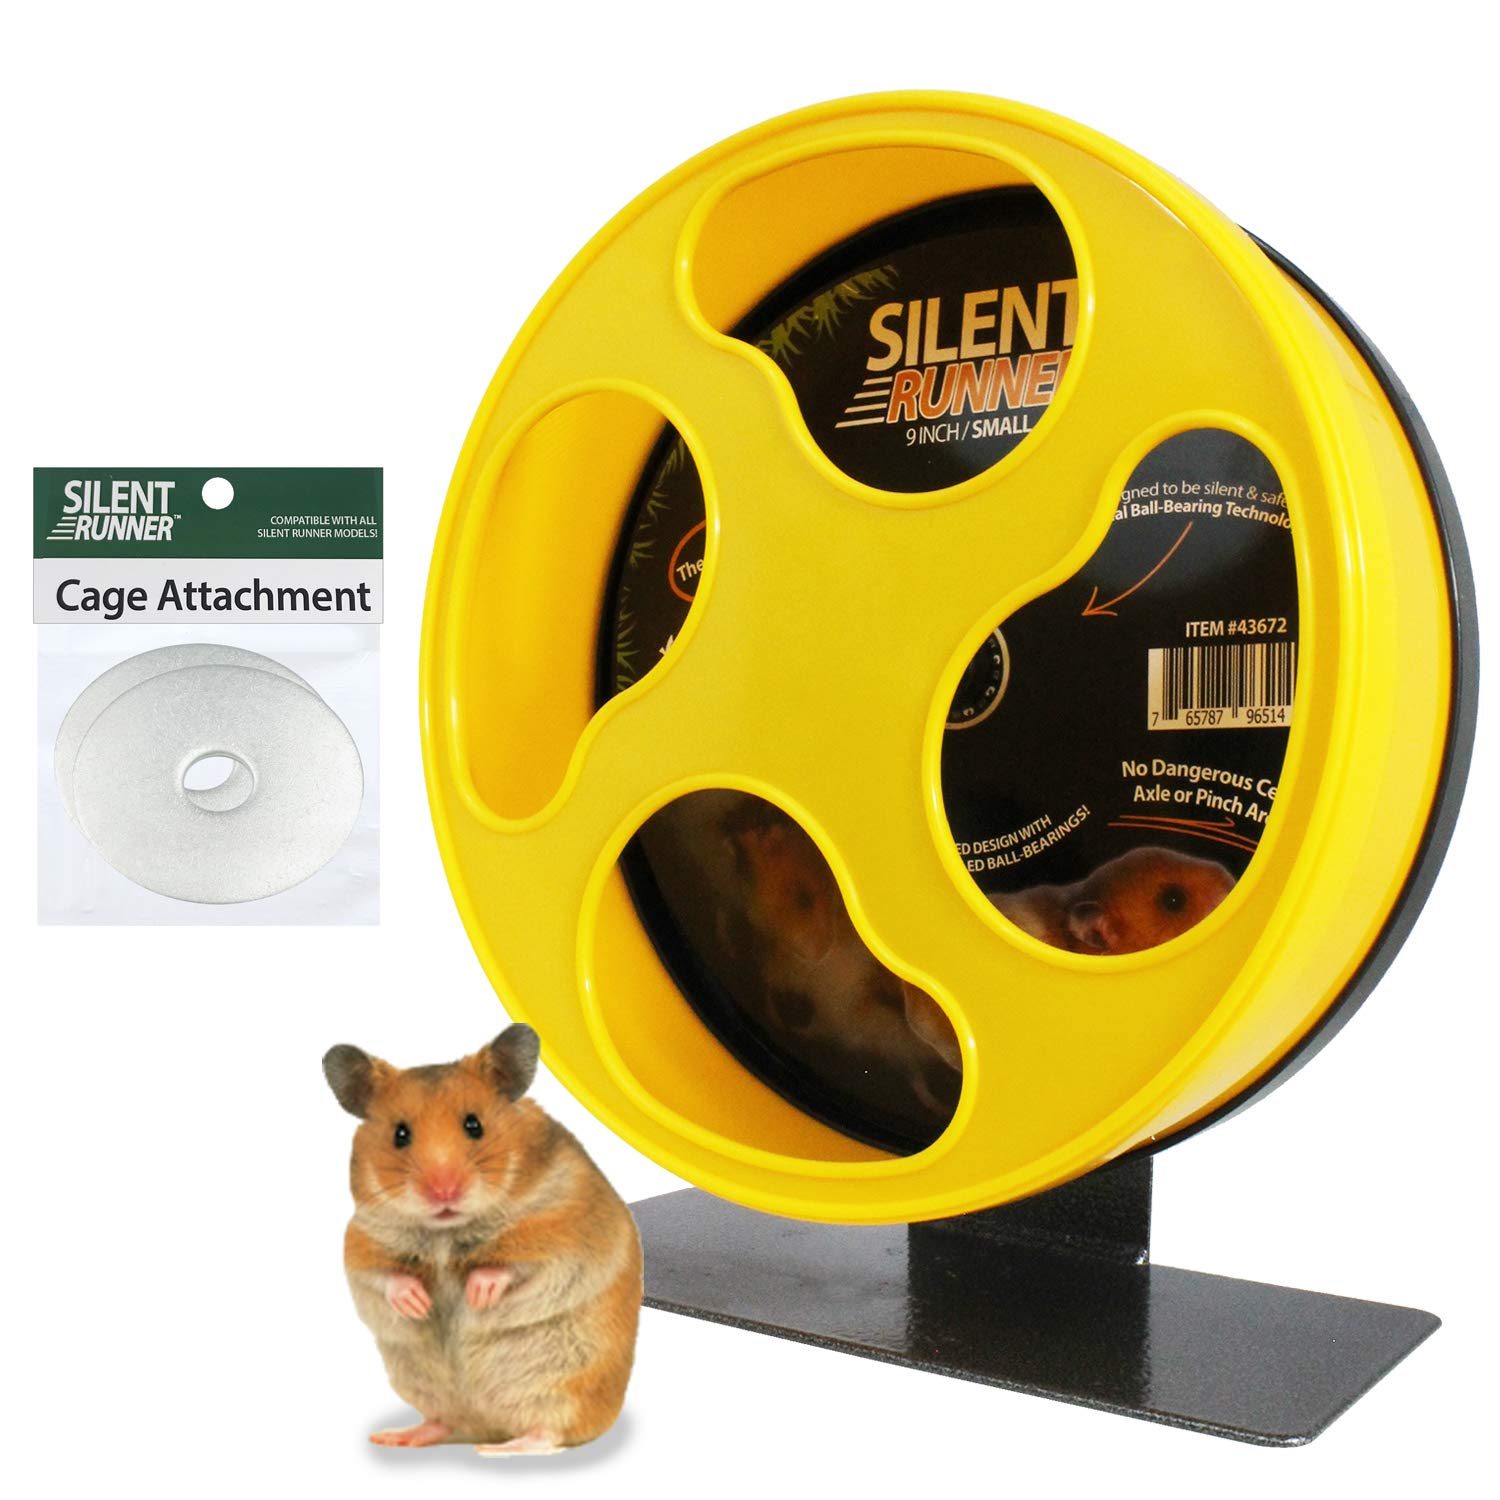 Silent Runner 9'' - Exercise Wheel + Cage Attachment - for Hamsters, Gerbils, Mice and Other Small Pets by Exotic Nutrition